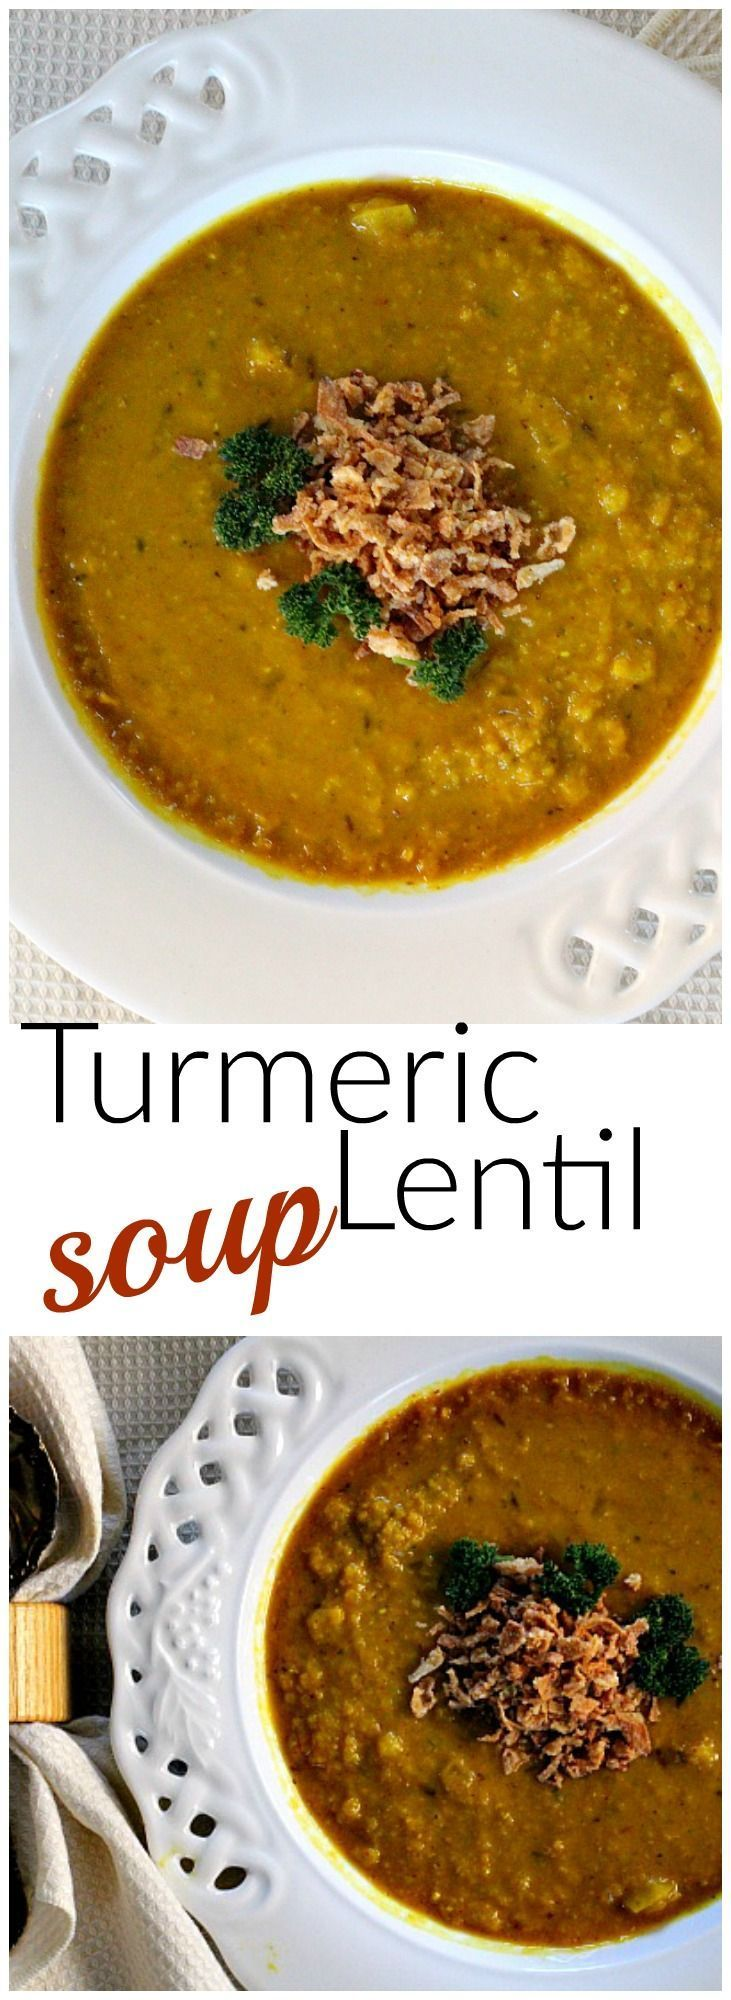 Healthy Turmeric and Lentil Soup Recipe. Easy and delicious dinner recipe idea. With carrots, celery and exciting exotic spices, this is one of our favorite soups.  Enjoy the benefits of healthy turmeric recipes. via /lannisam/